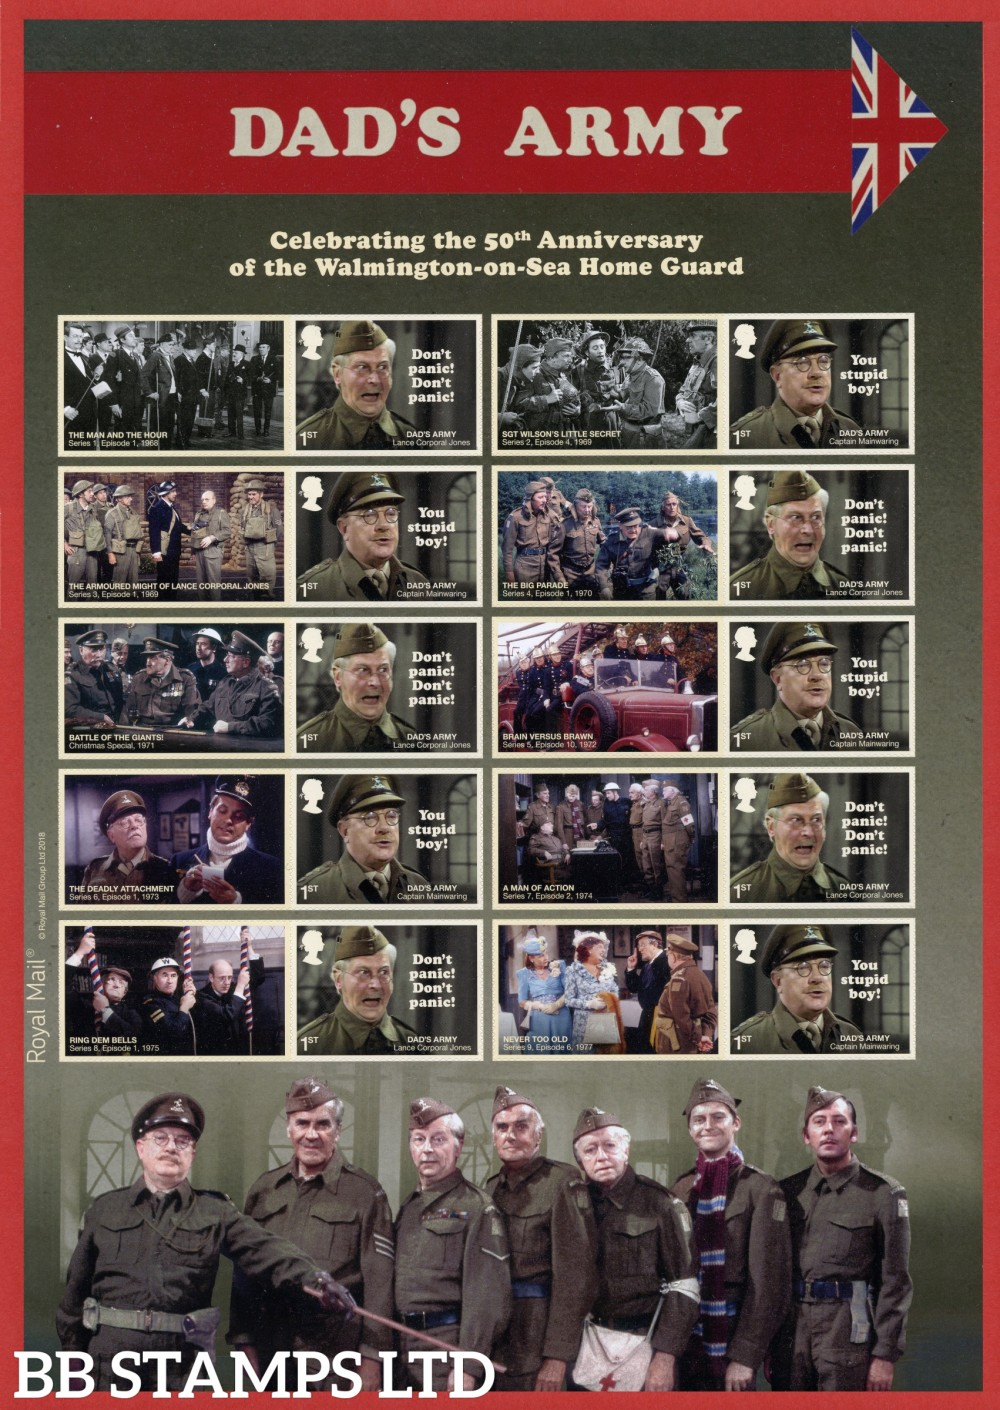 2018 Dads Army 50th Anniversary Smiler Sheet.